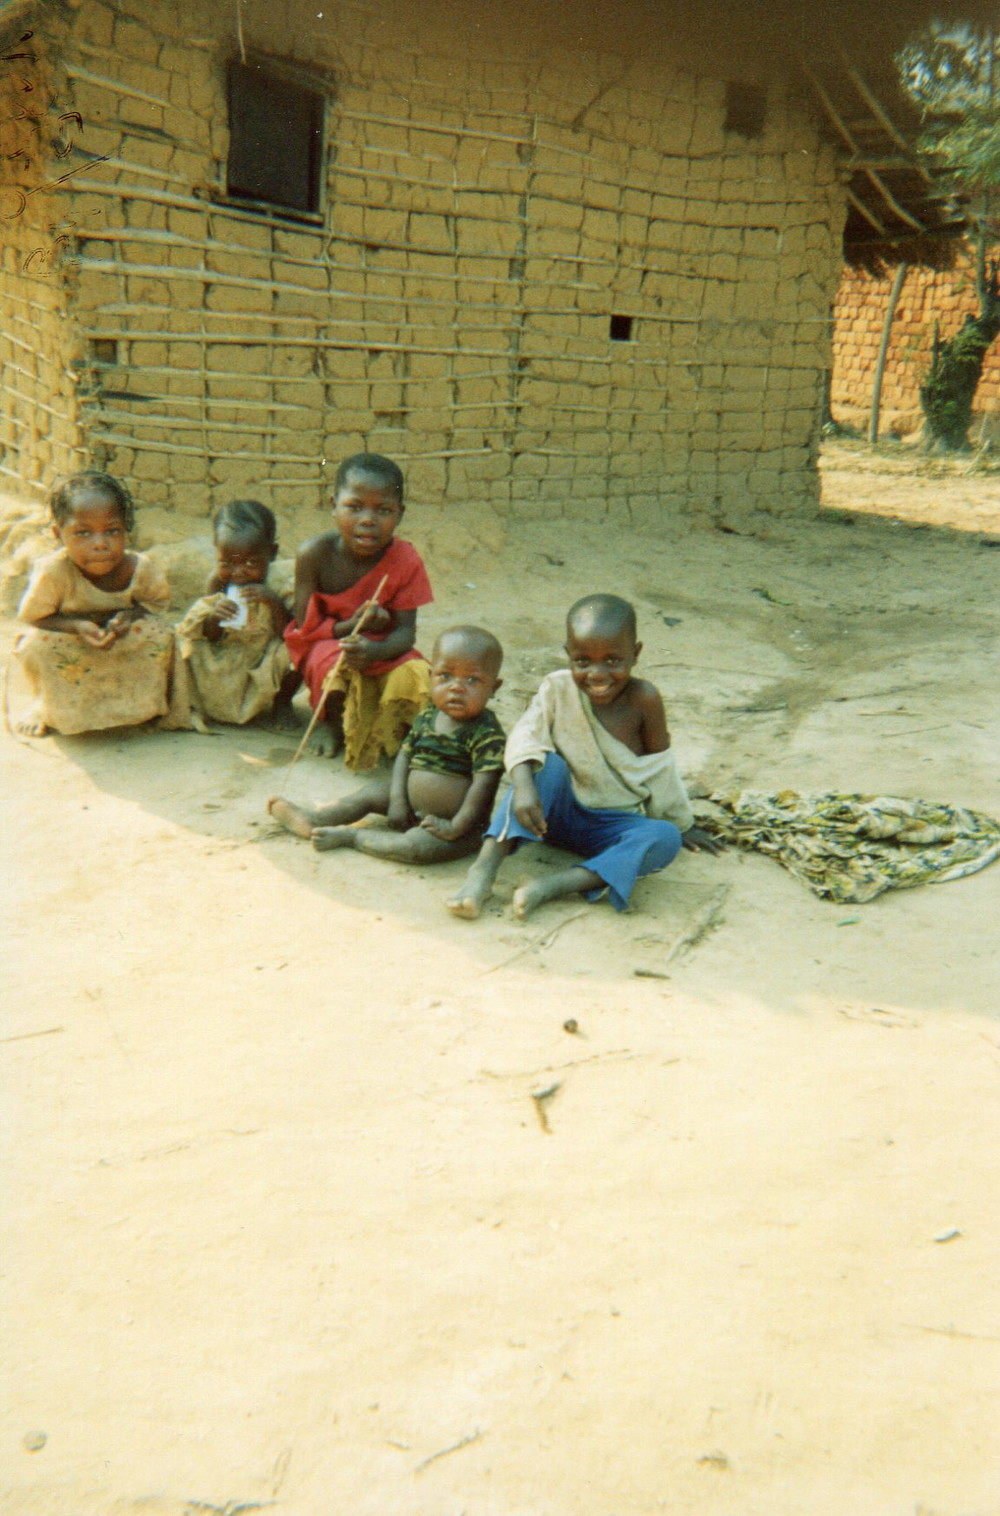 When I left the forest I met a lot of difficulties at home when I saw that all the kids did not have food.